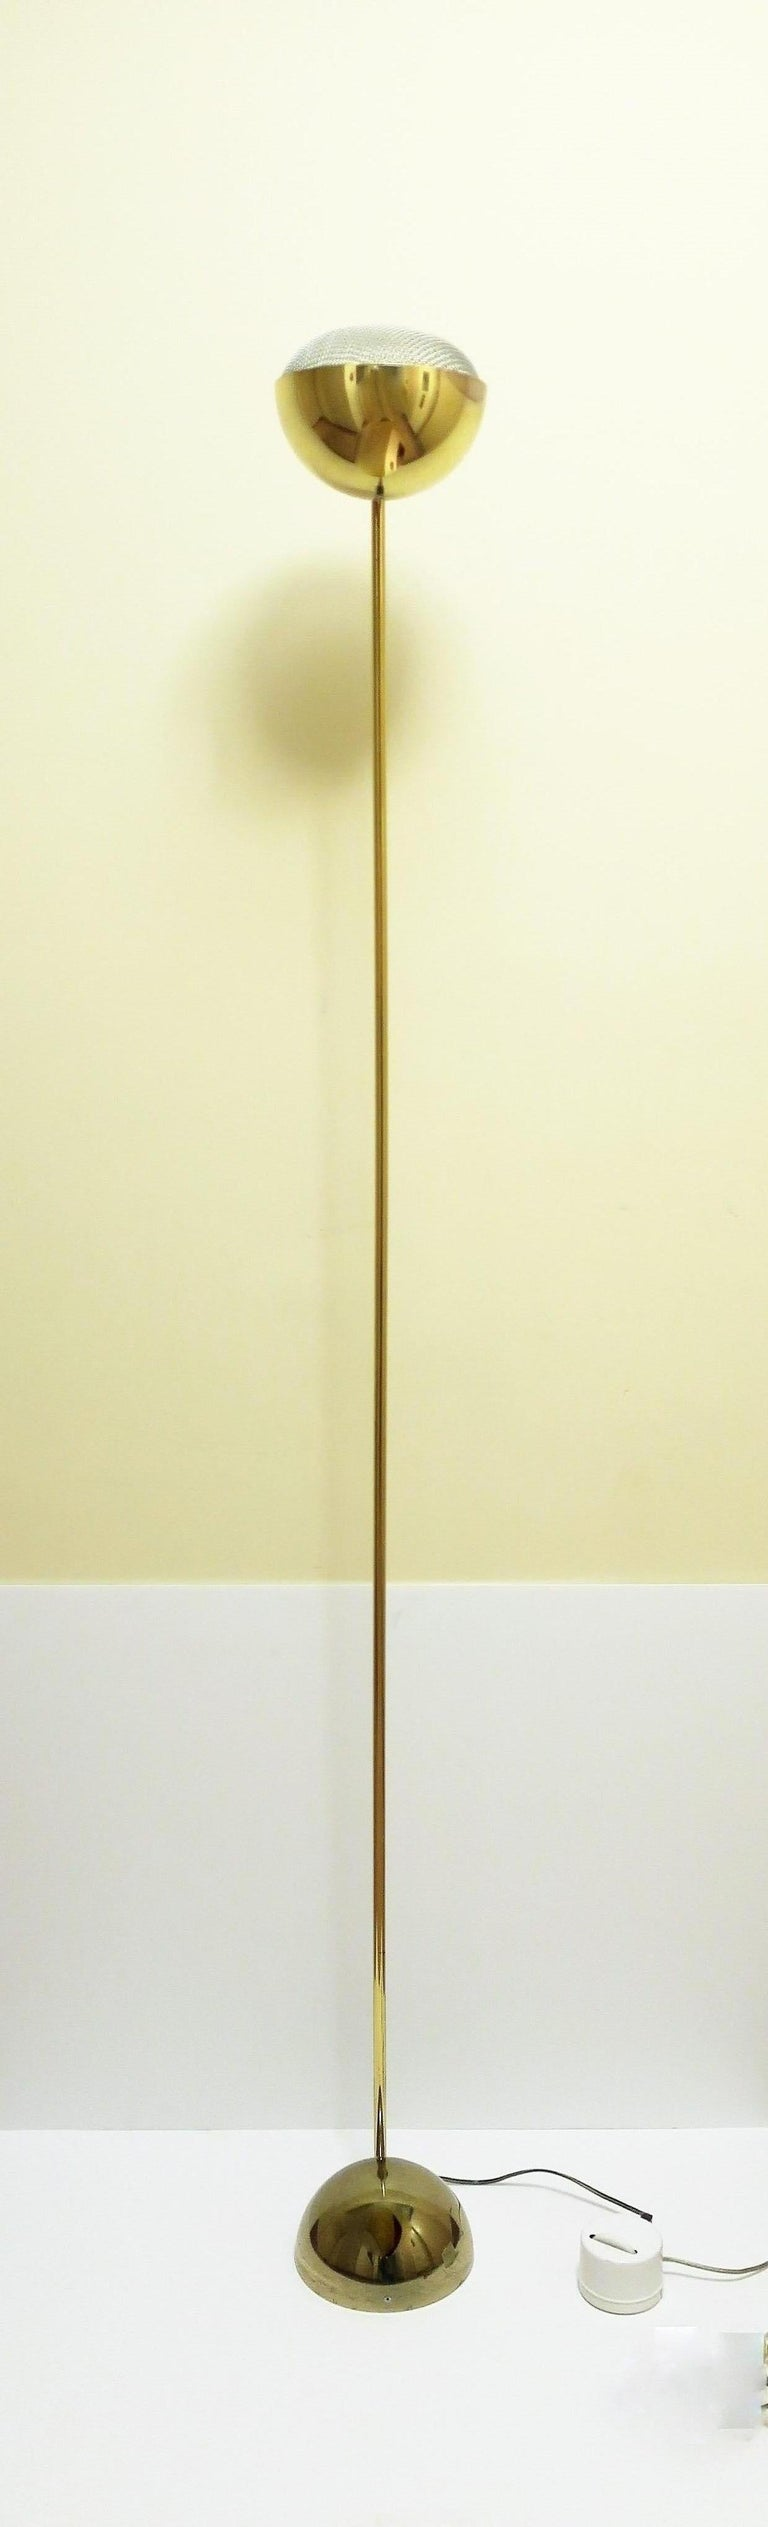 A substantial and well made 1970s Modern Postmodern period brass floor lamp, circa late-1970s, USA. On/Off switch at bottom with dimmer offering a wide range of light from low to bright.   Measures: 70